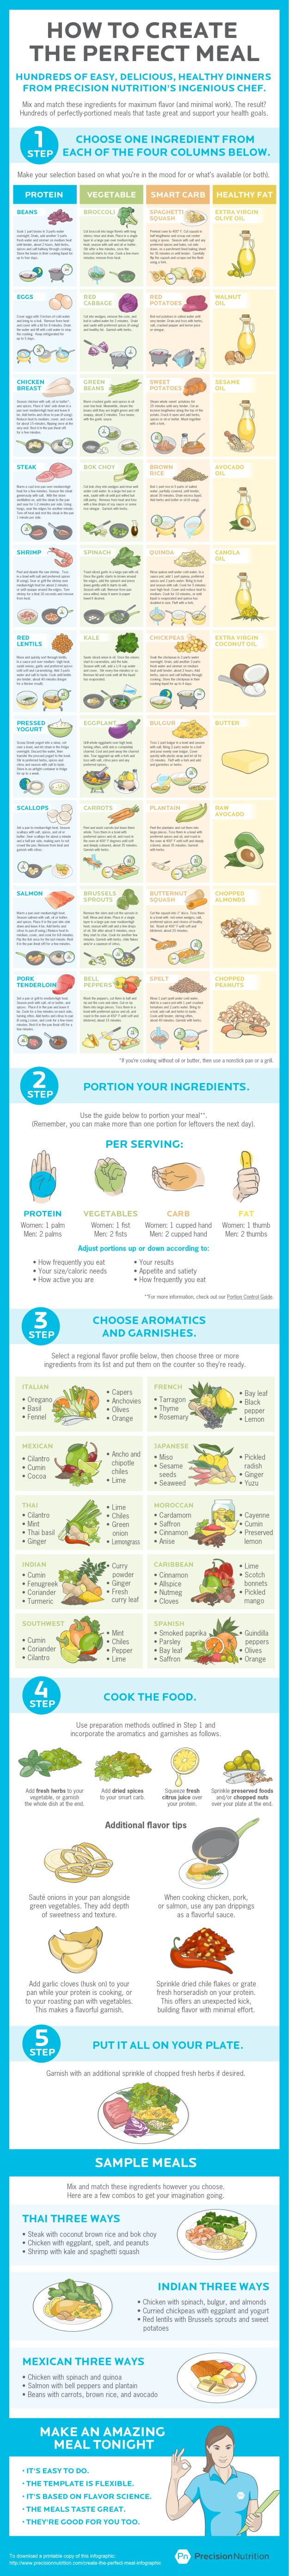 For endless meal ideas with a healthy combination of protein, vegetables, carbs, and fat. | 25 Cheat Sheets That Make Cooking Healthier Less Of A Freaking Chore